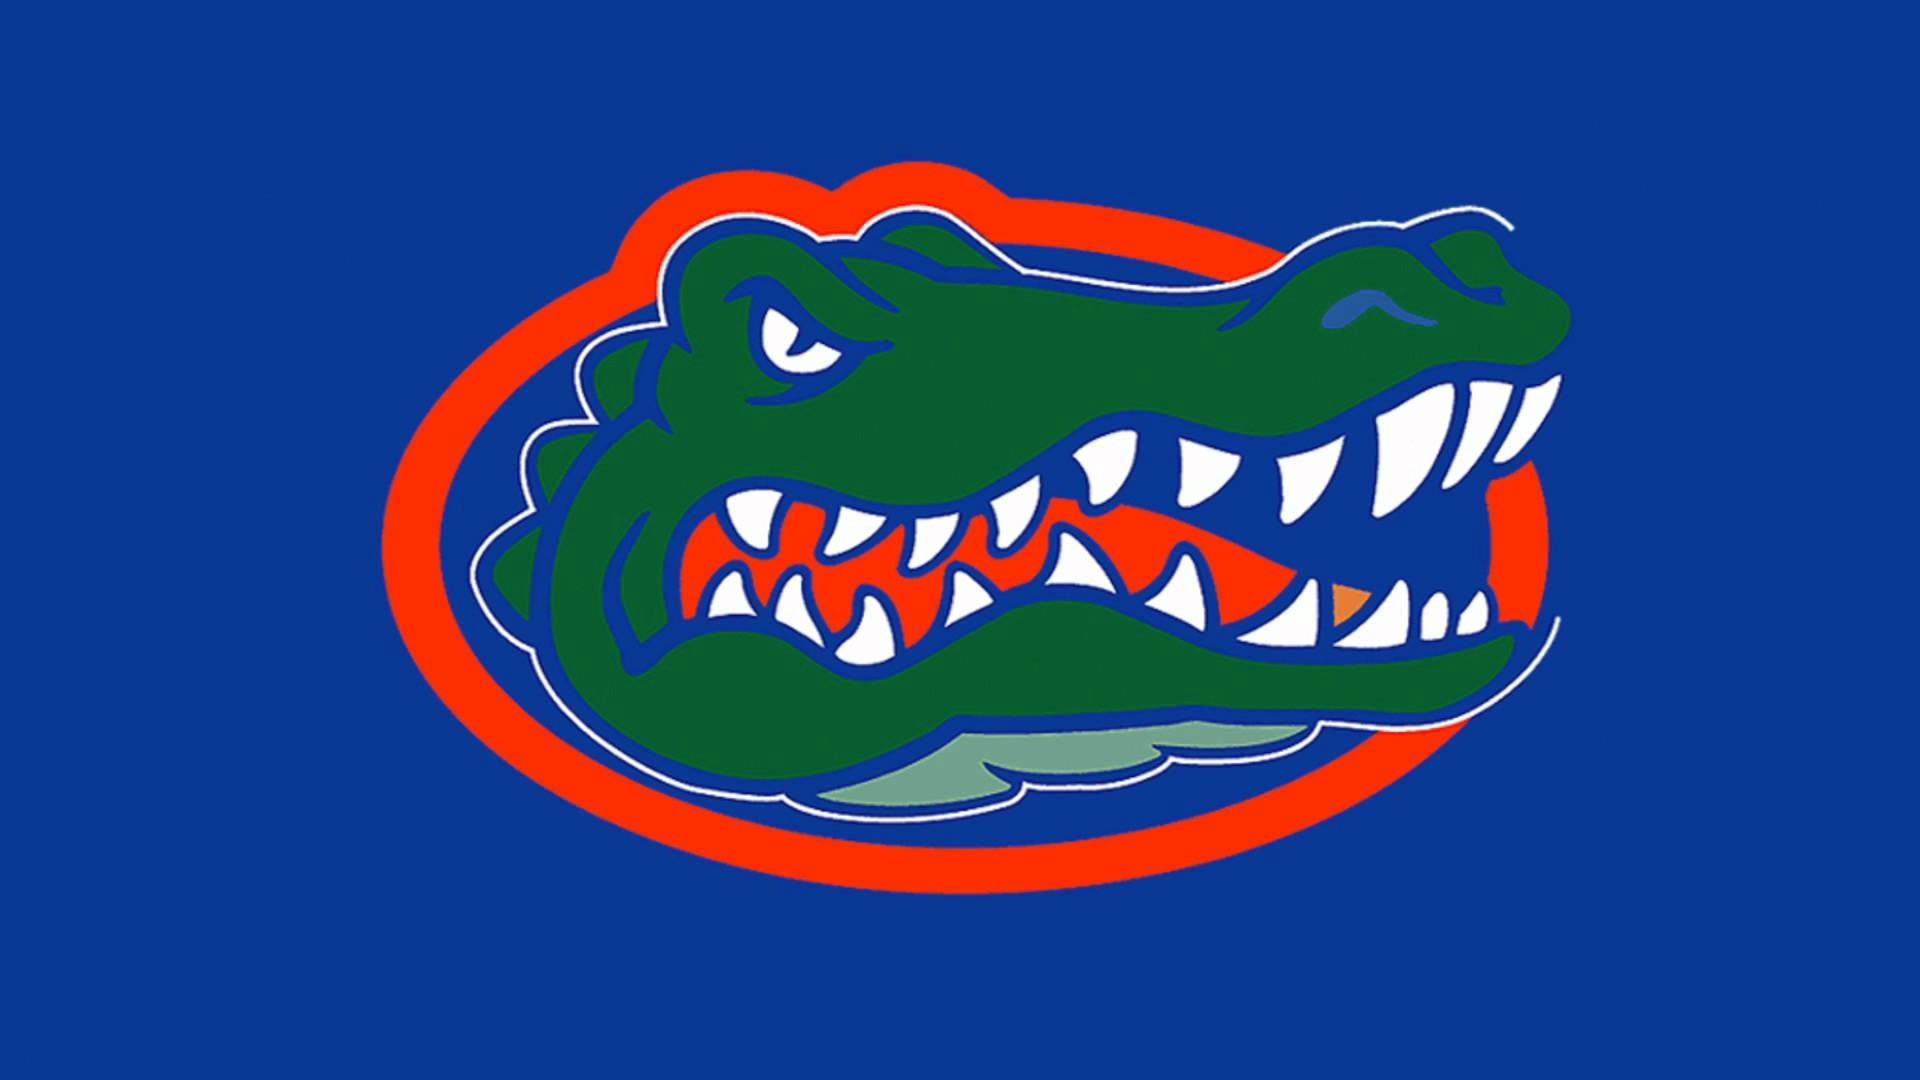 1920x1080 Florida Gators Backgrounds Free Download.